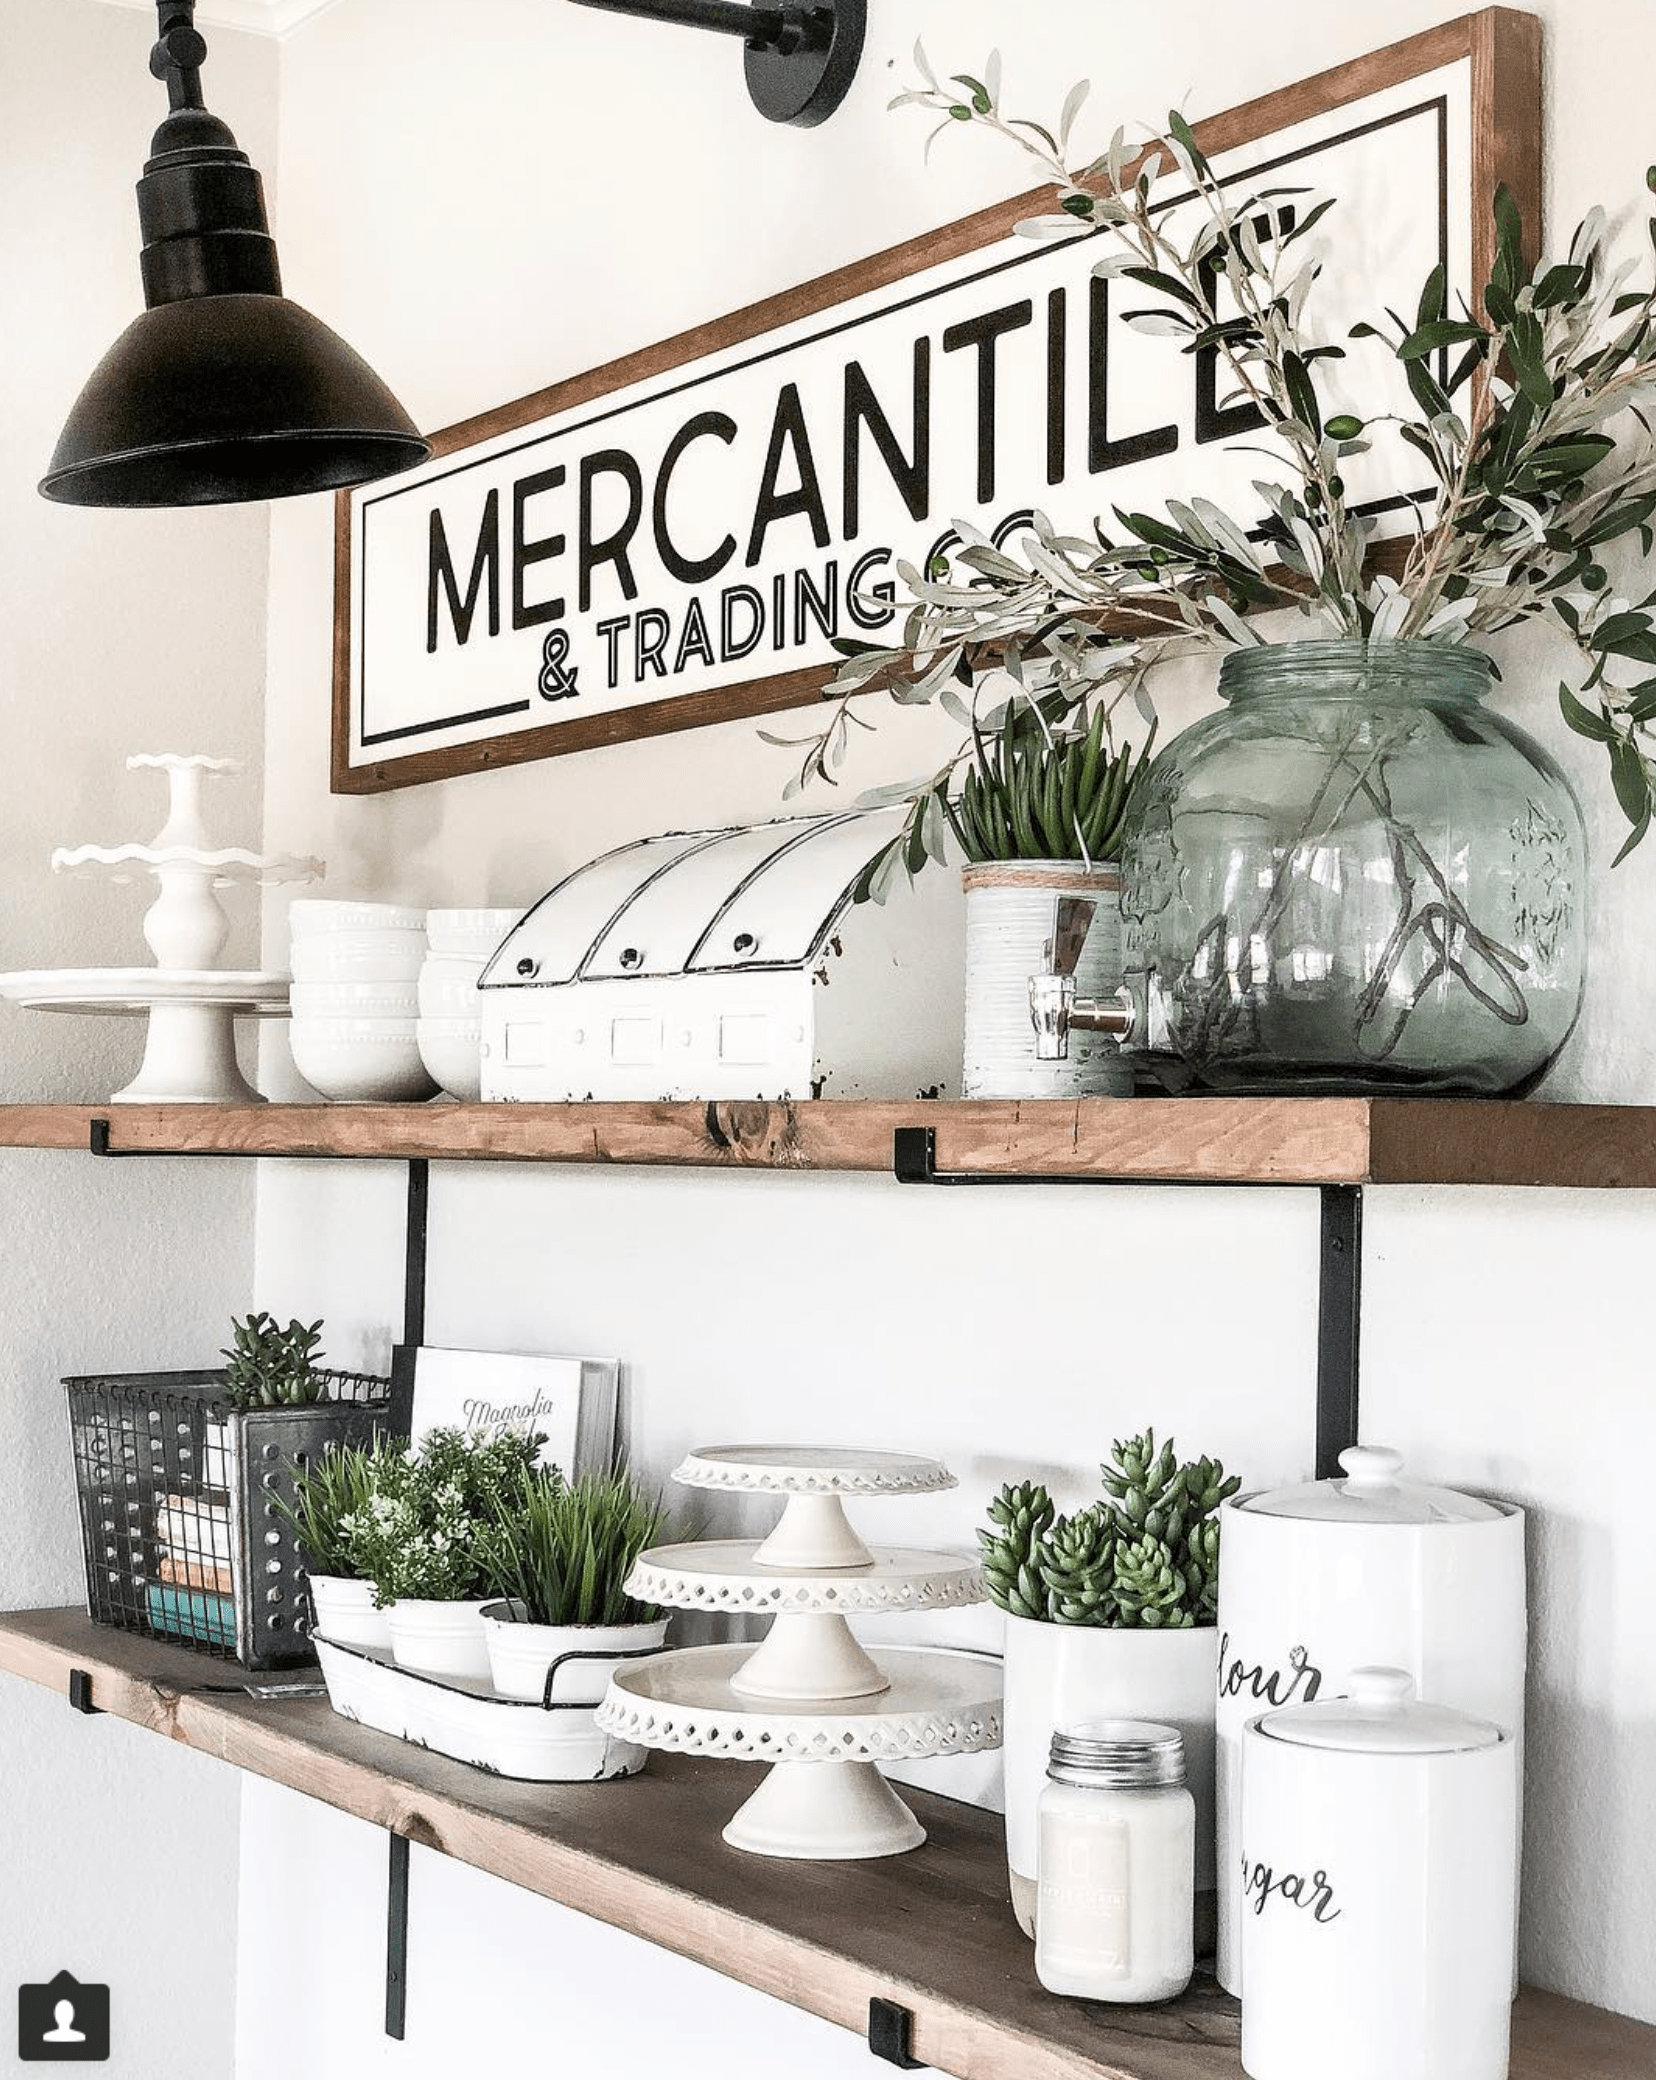 All of the farmhouse style elements on this wall are worth swooning over